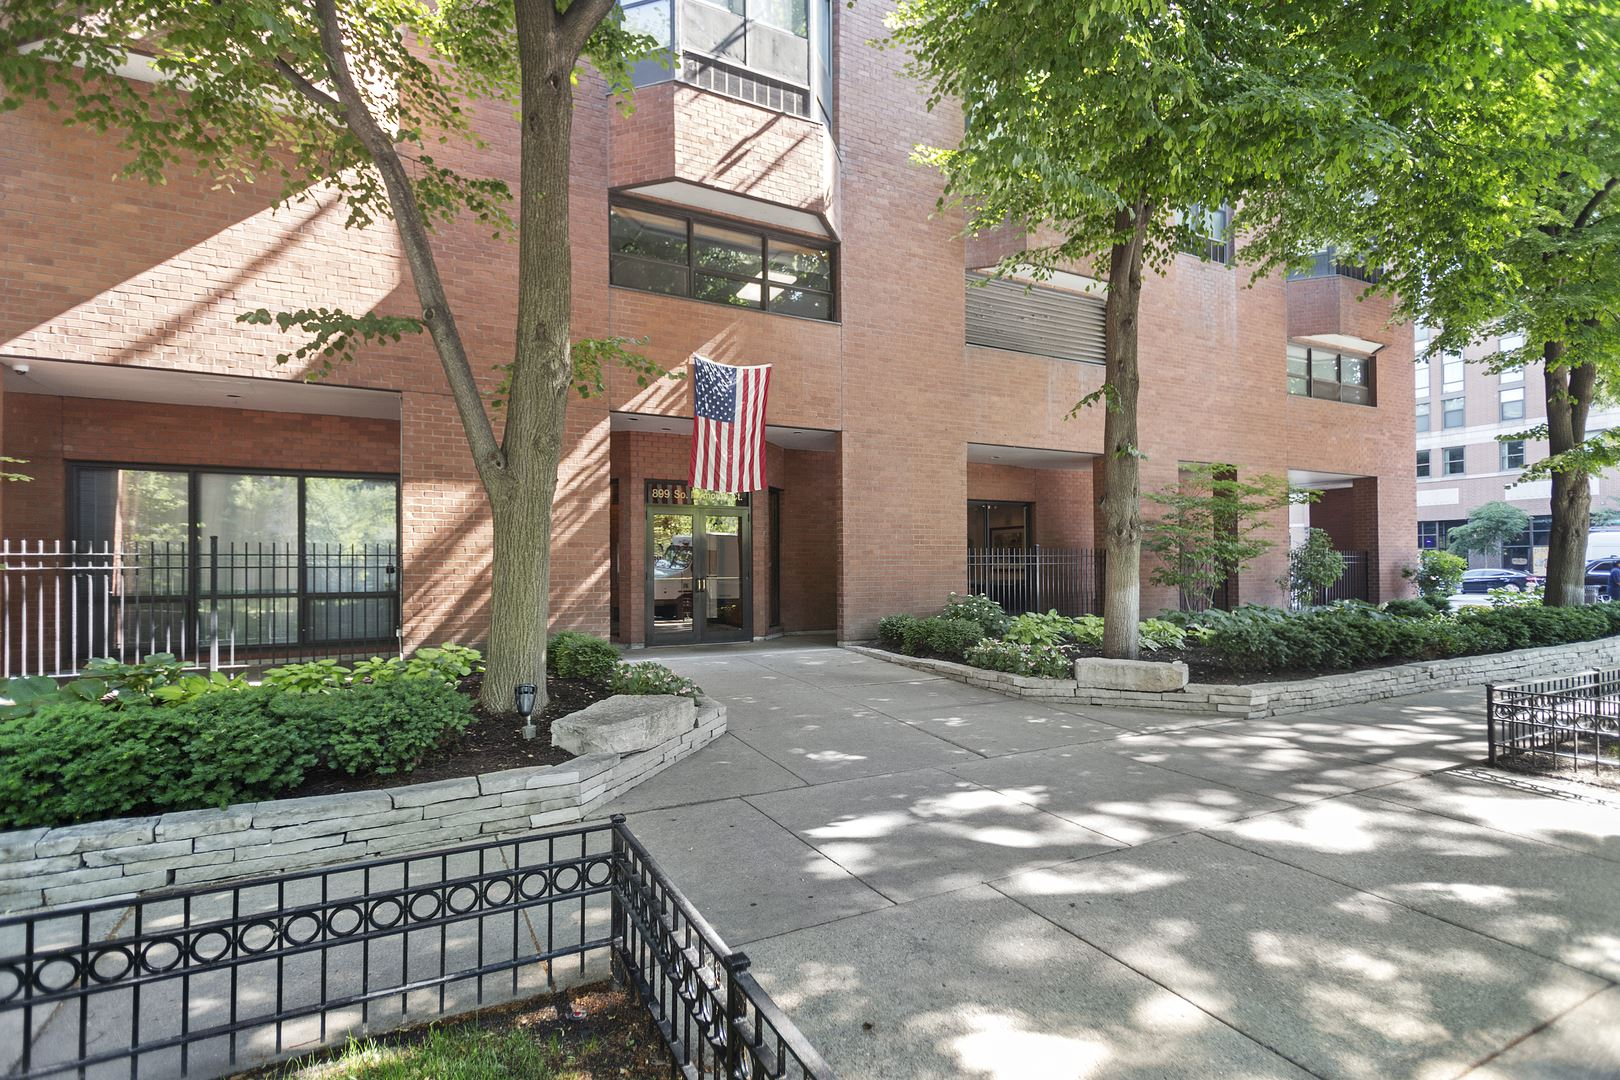 899 S Plymouth Court #902, Chicago, IL 60605 - #: 10775162